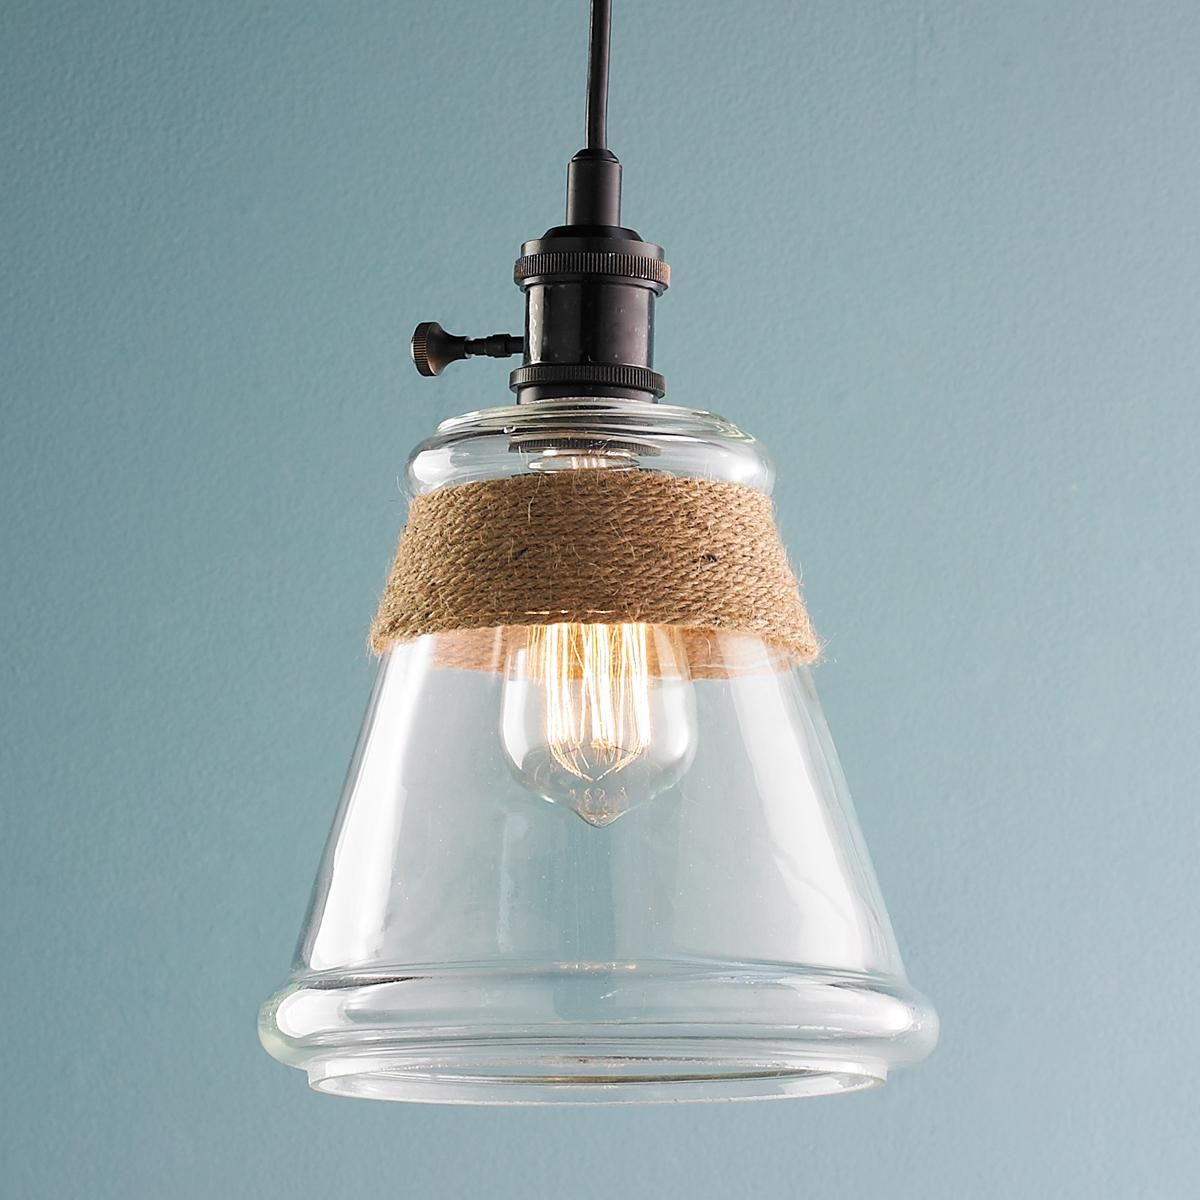 Clear Glass Rope Pendant Light Rope Pendant Light Pendant Light Glass Pendant Shades